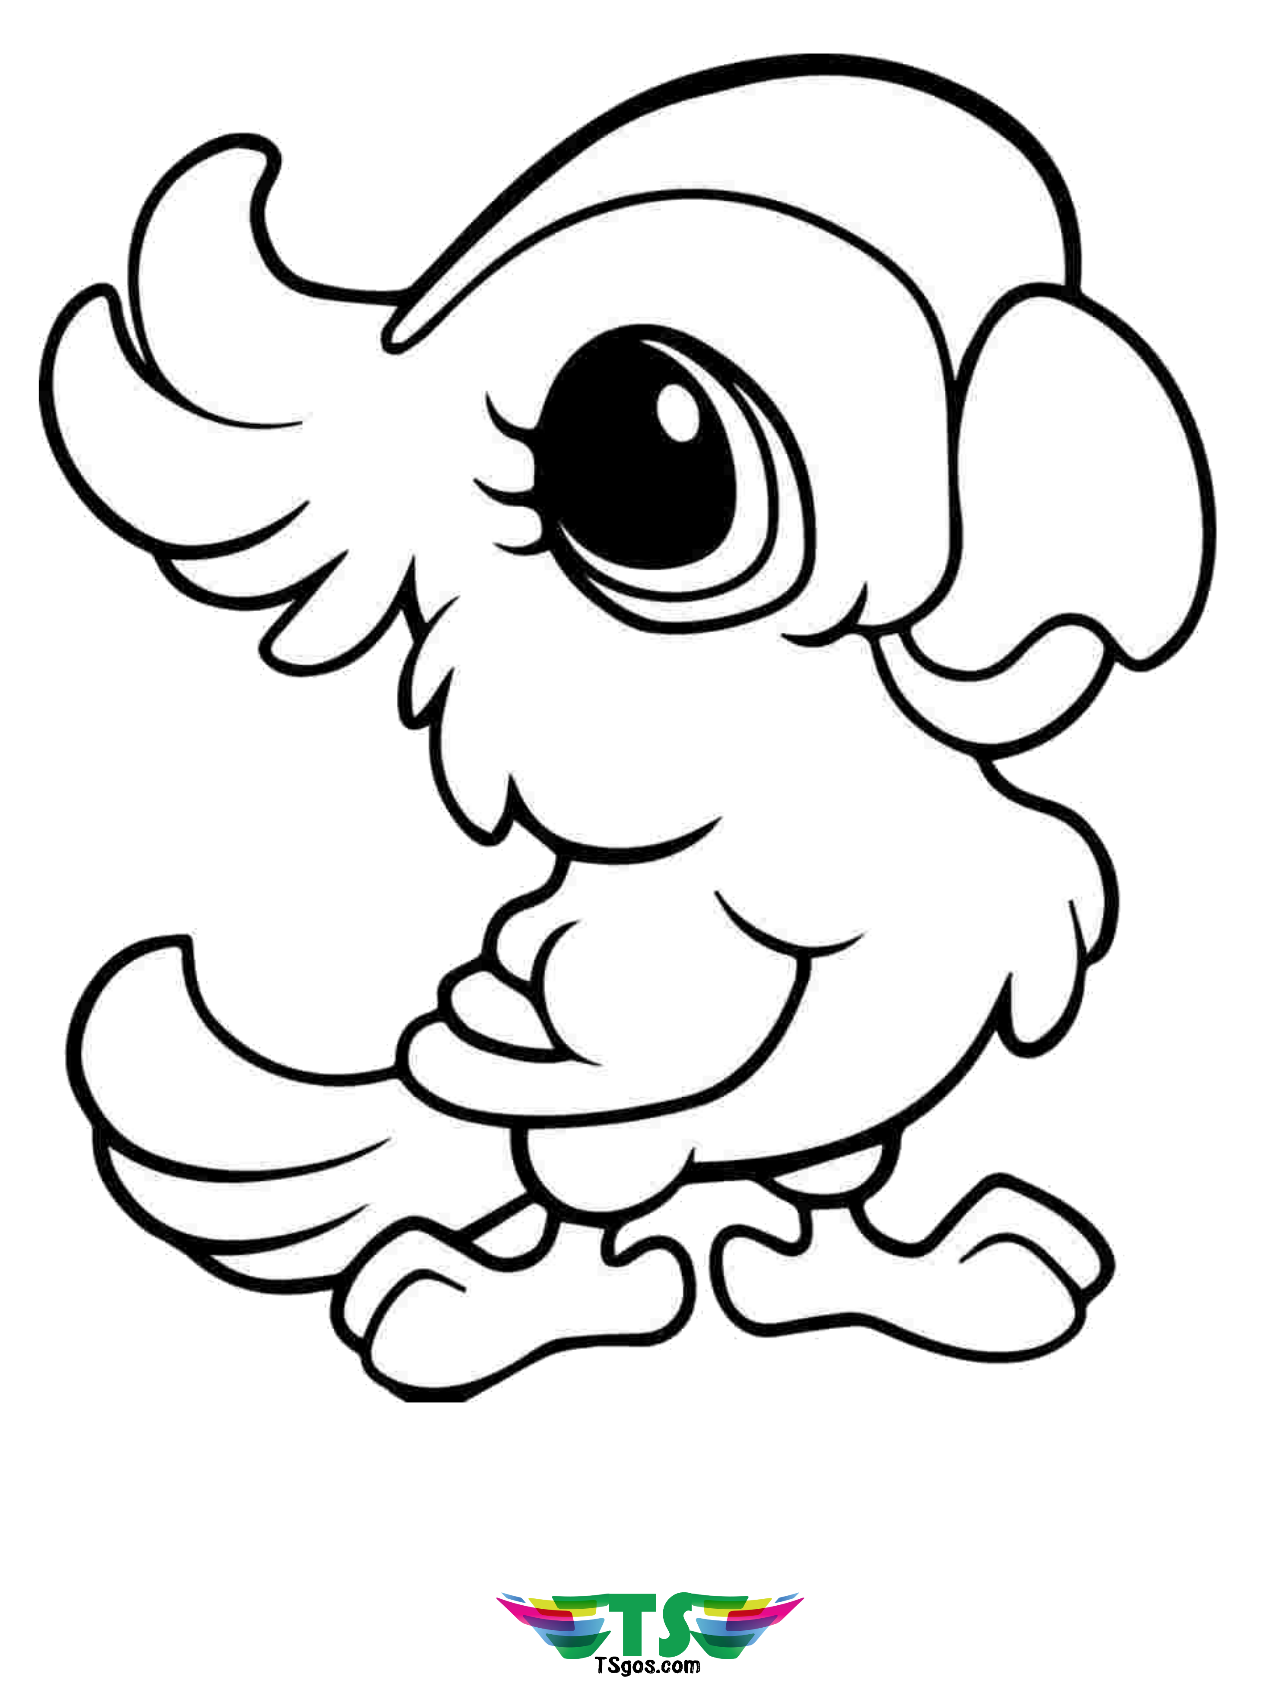 bird color pages birds free to color for children birds kids coloring pages color pages bird